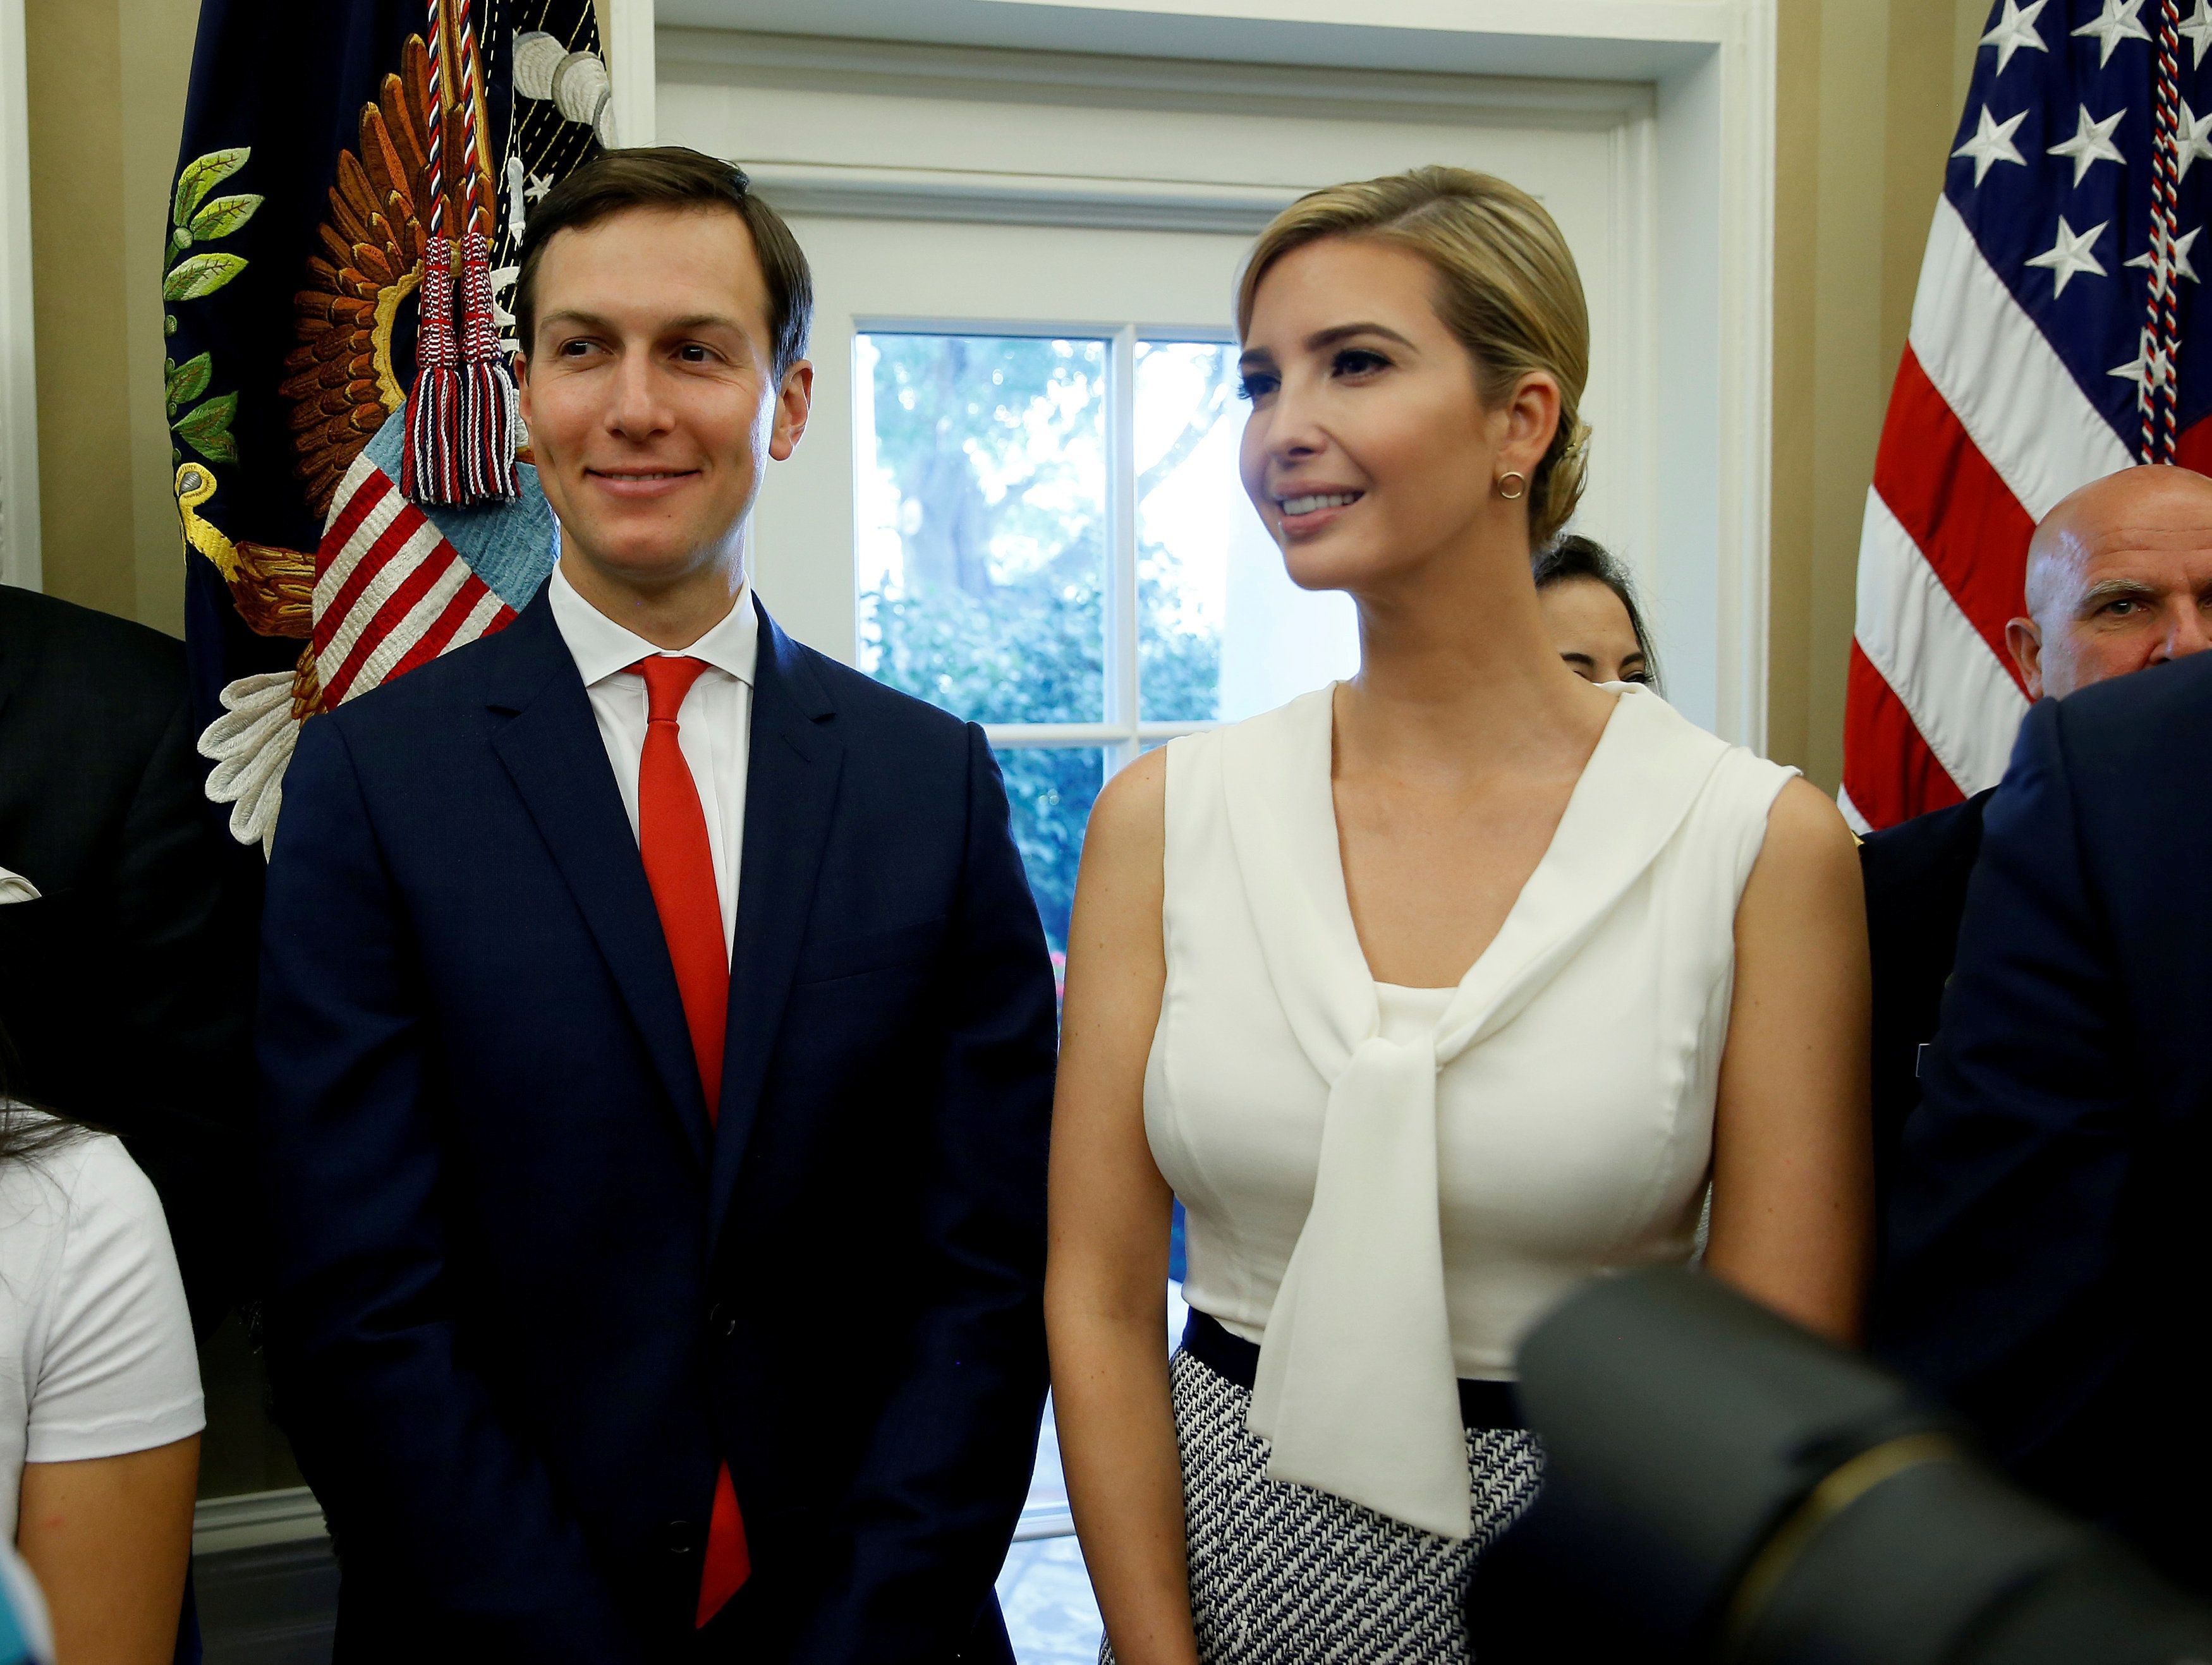 Jared Kushner's Been Doing The Same Thing Trump Wanted To Lock Up Hillary Clinton